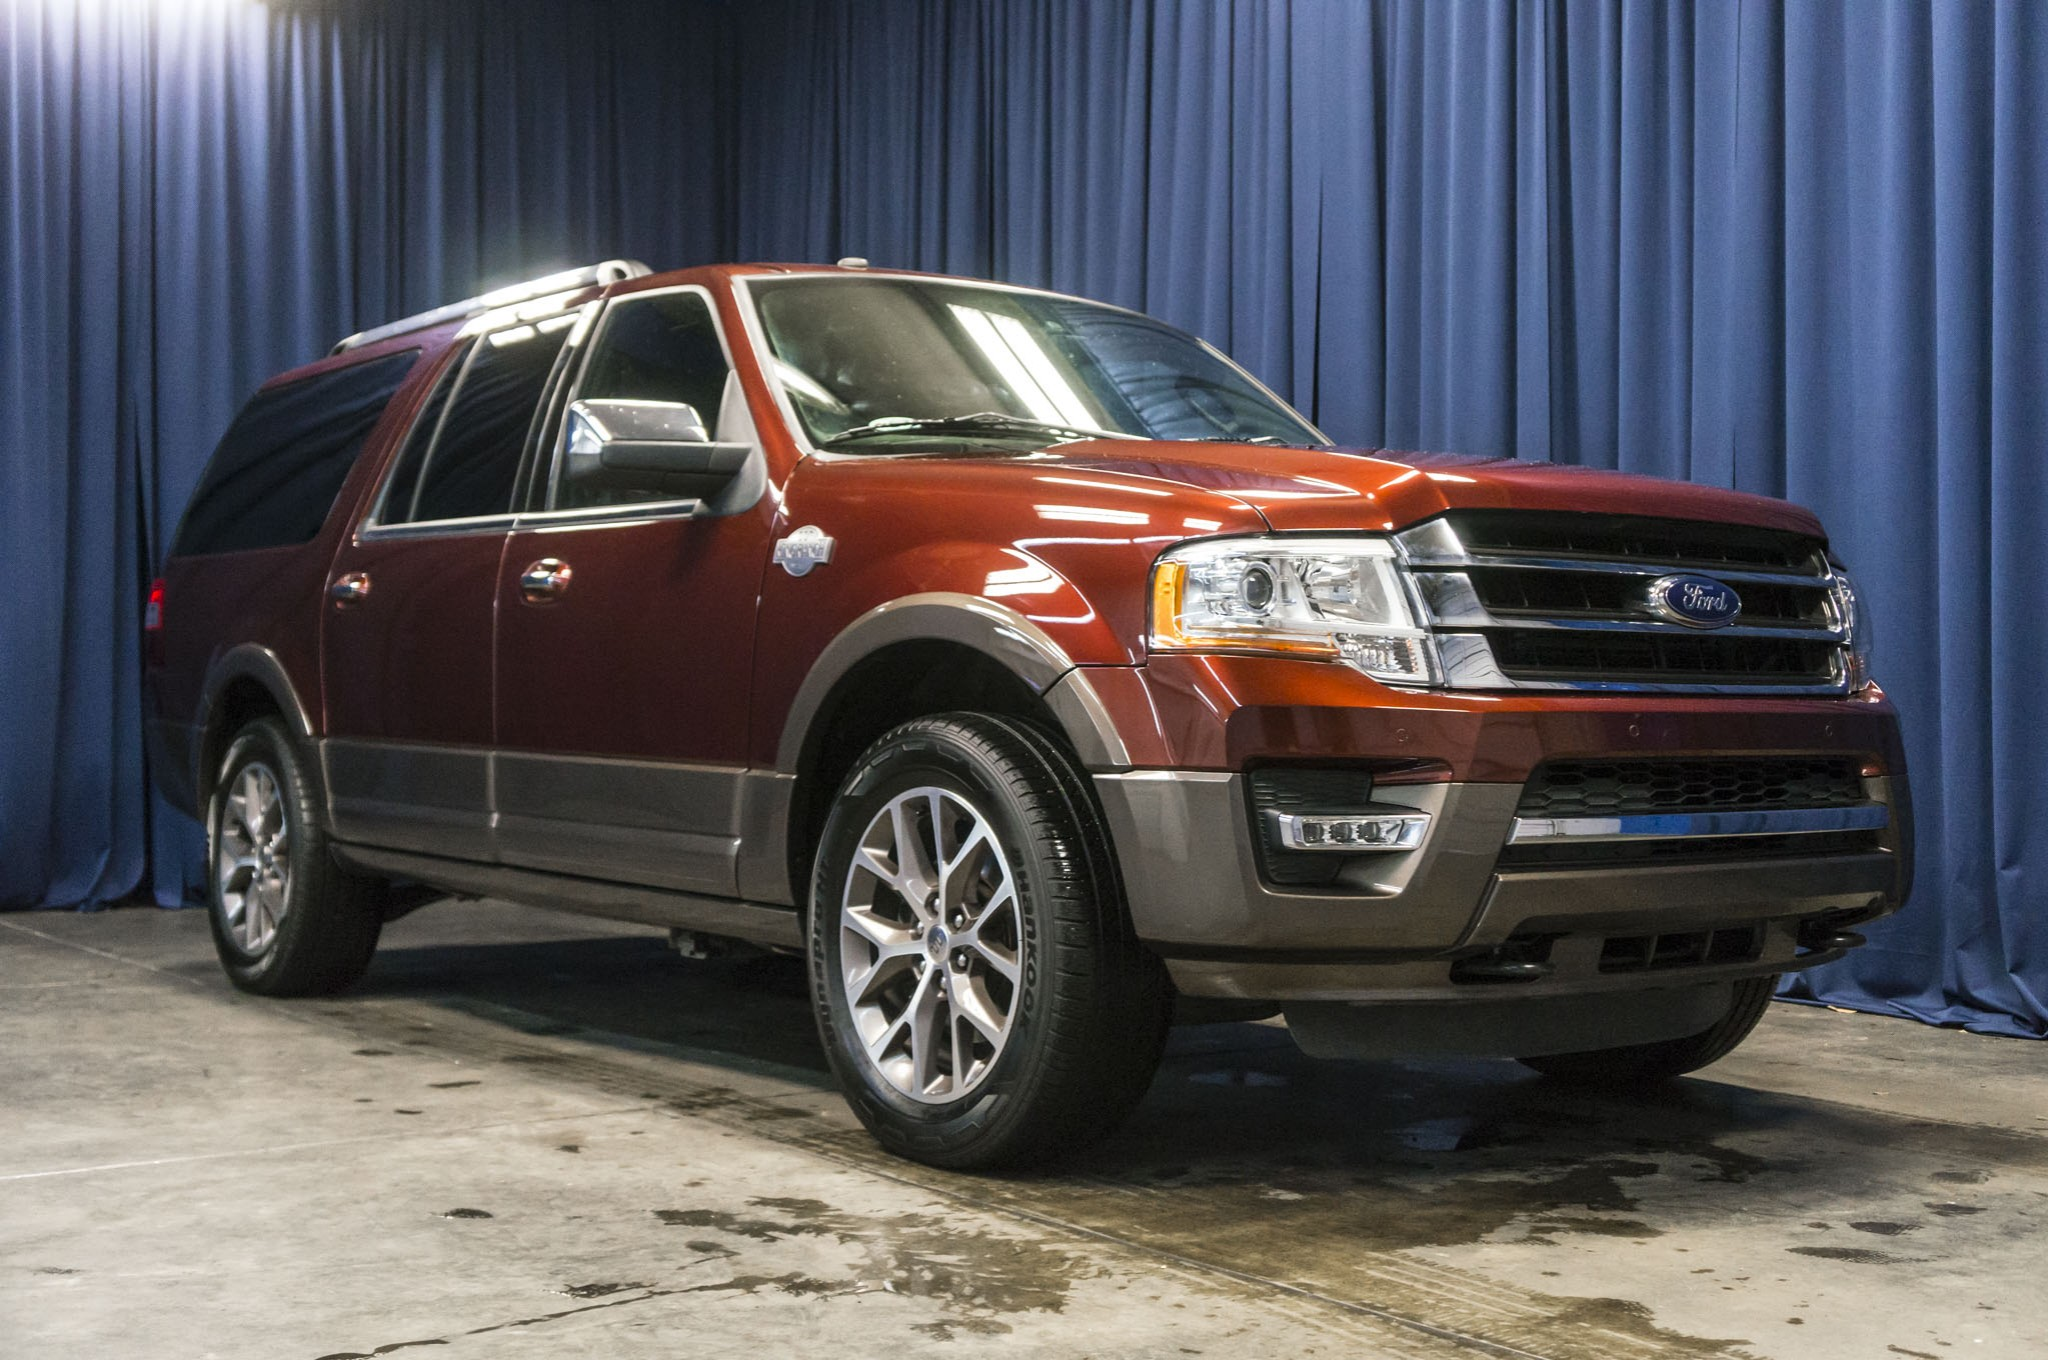 used 2016 ford expedition king ranch el 4x4 suv for sale 36755. Black Bedroom Furniture Sets. Home Design Ideas